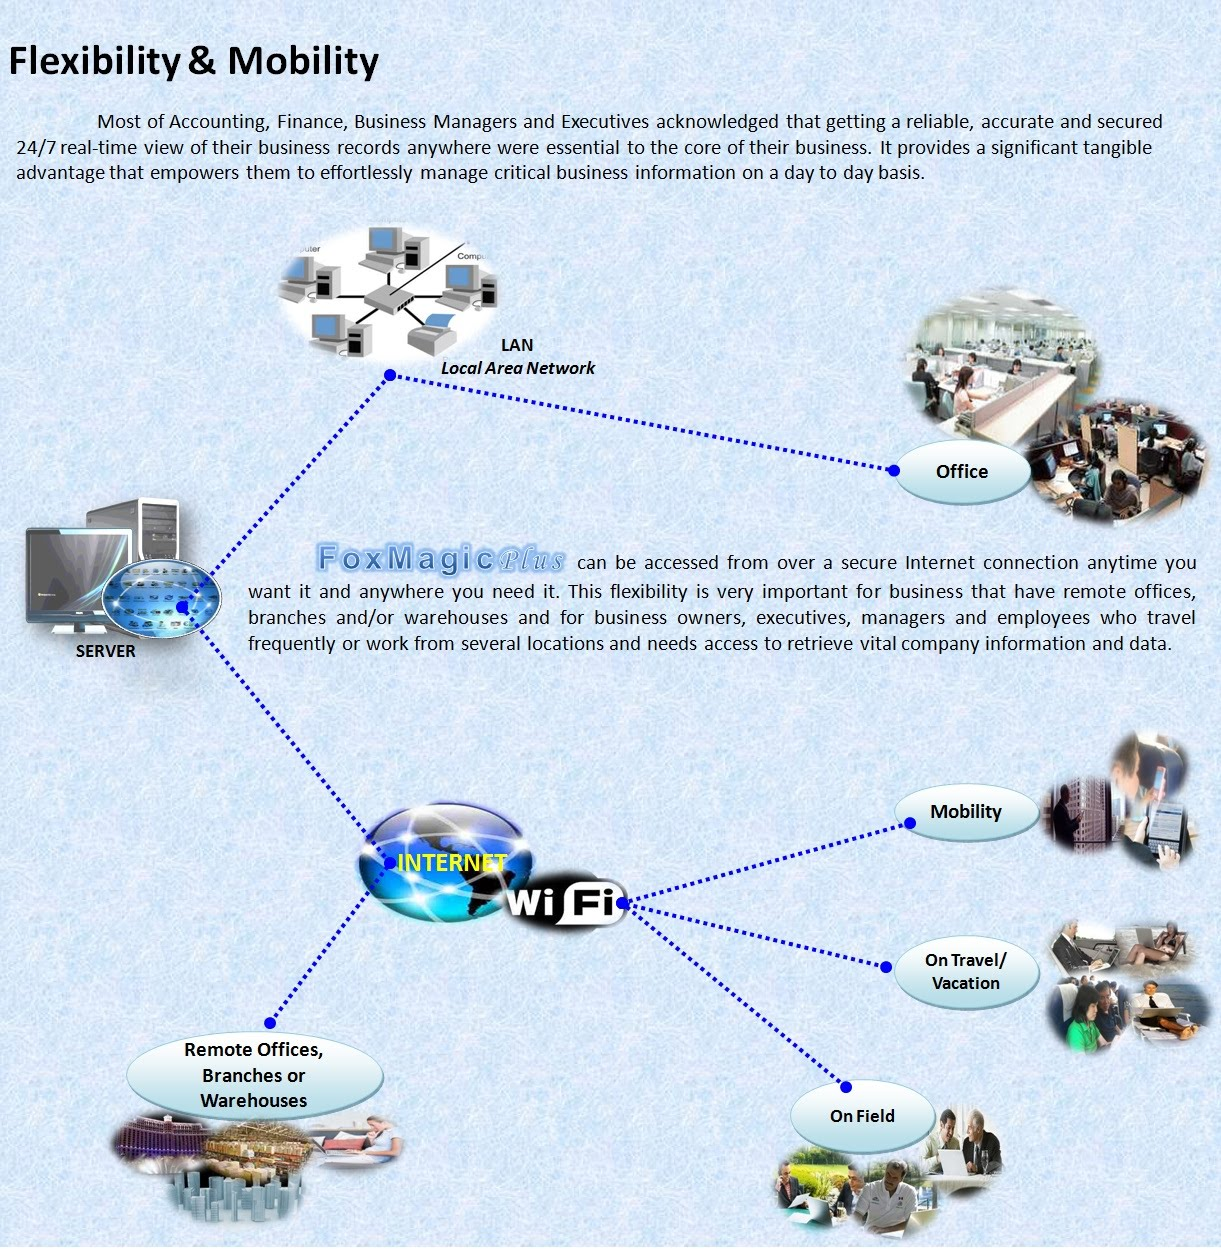 Flexibility & Mobility - FOXMAGIC PLUS - Entirely Web Based Open